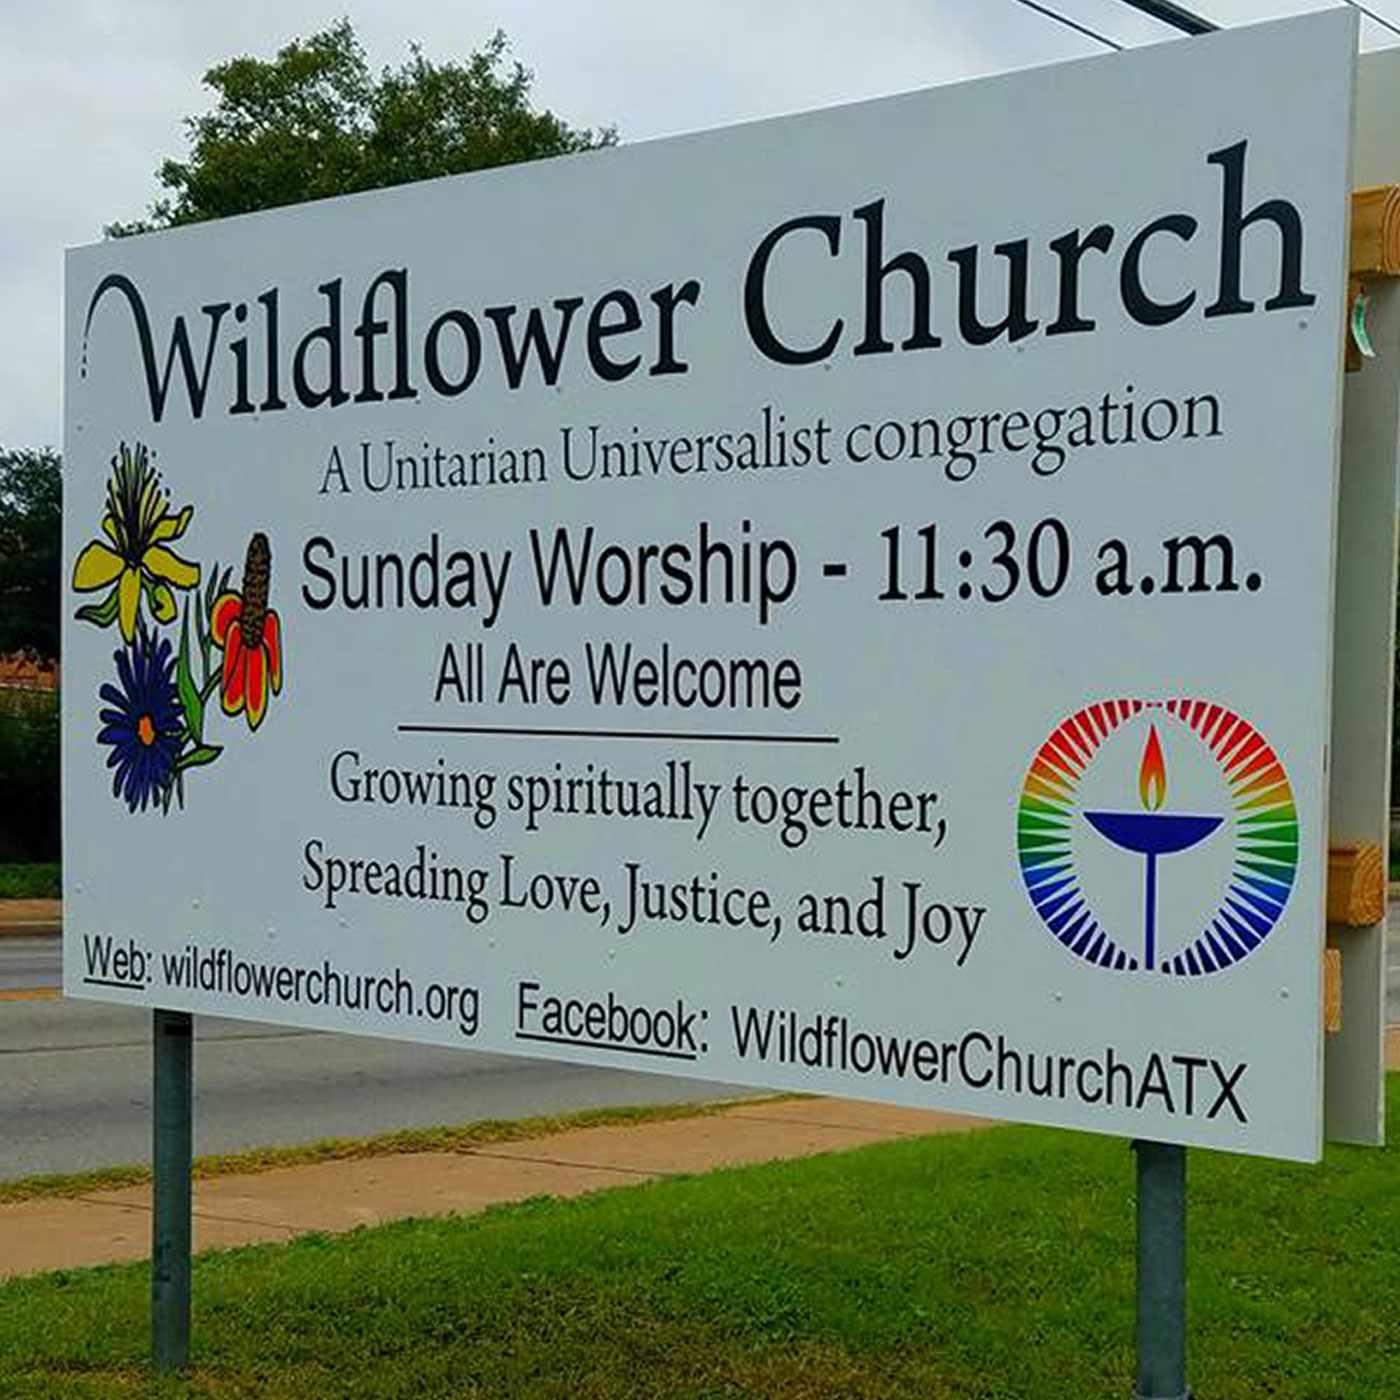 Wildflower Church, Austin, TX